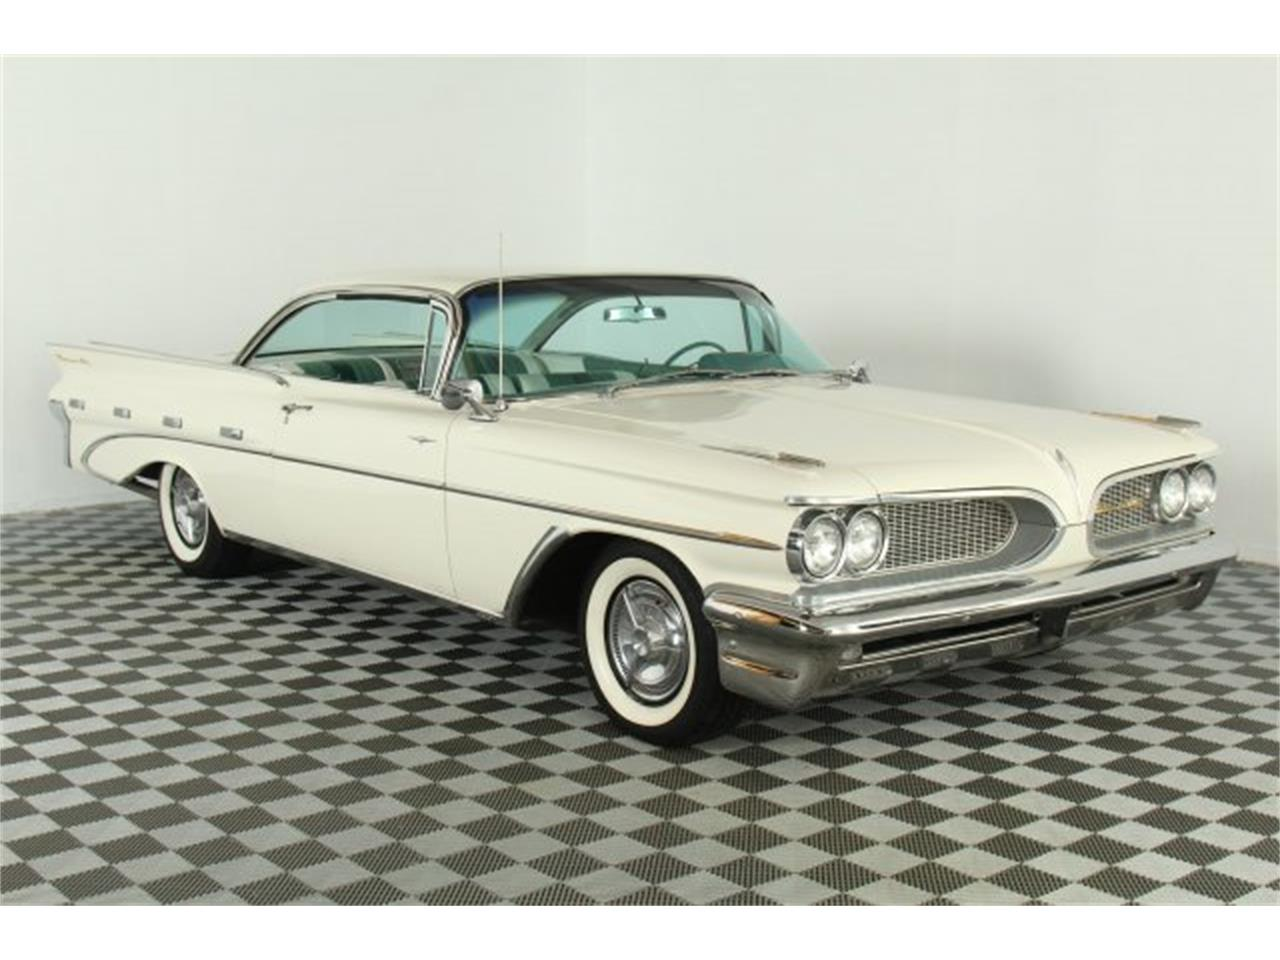 1959 Pontiac Bonneville for sale in Elyria, OH – photo 2